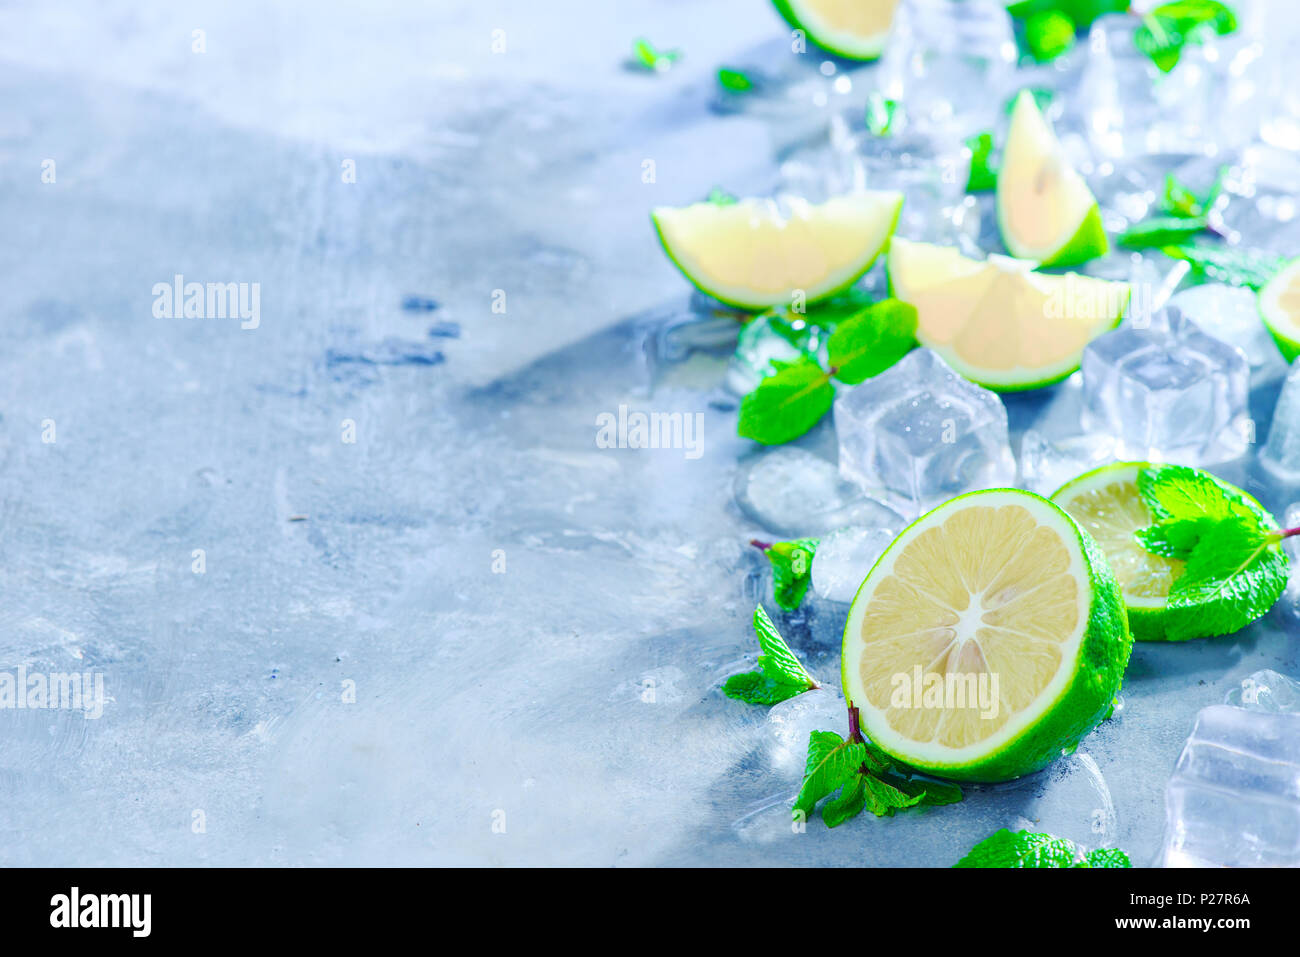 Mint, lime and ice cubes, mojito cocktail ingredients header with copy space. Making summer drinks close-up. Sunlight and refreshment concept. - Stock Image